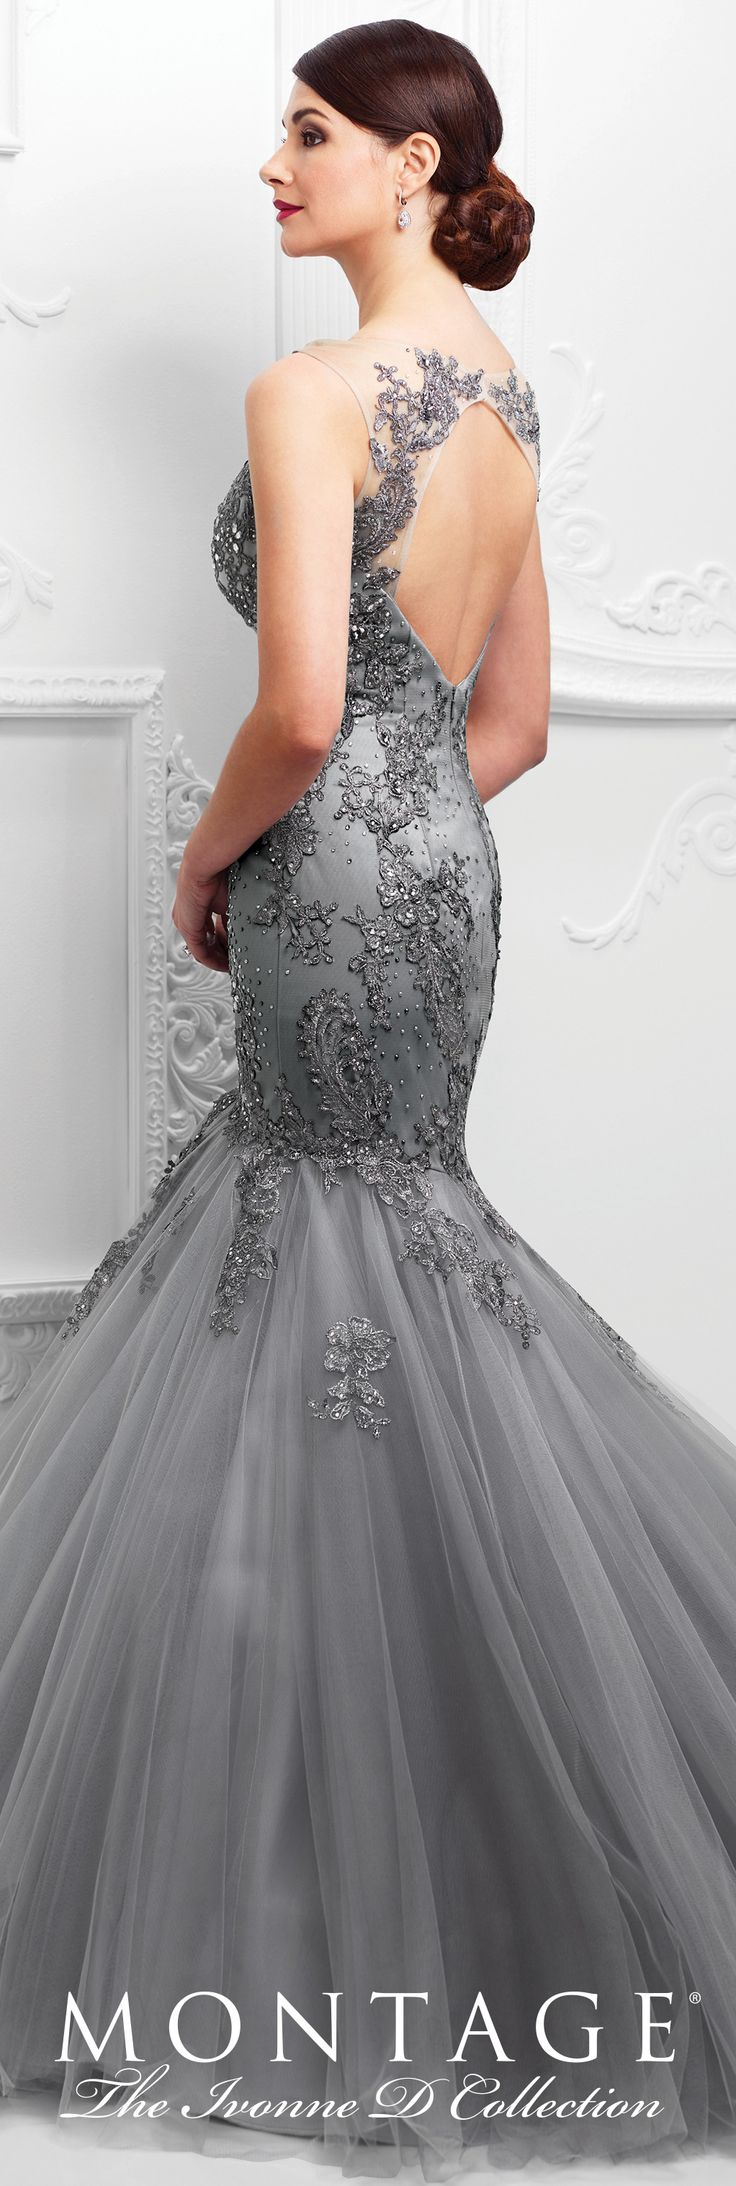 Formal Evening Gowns by Mon Cheri - Spring 2017 - Style No. 117D74 - gray sleeveless metallic lace and tulle mermaid evening dress